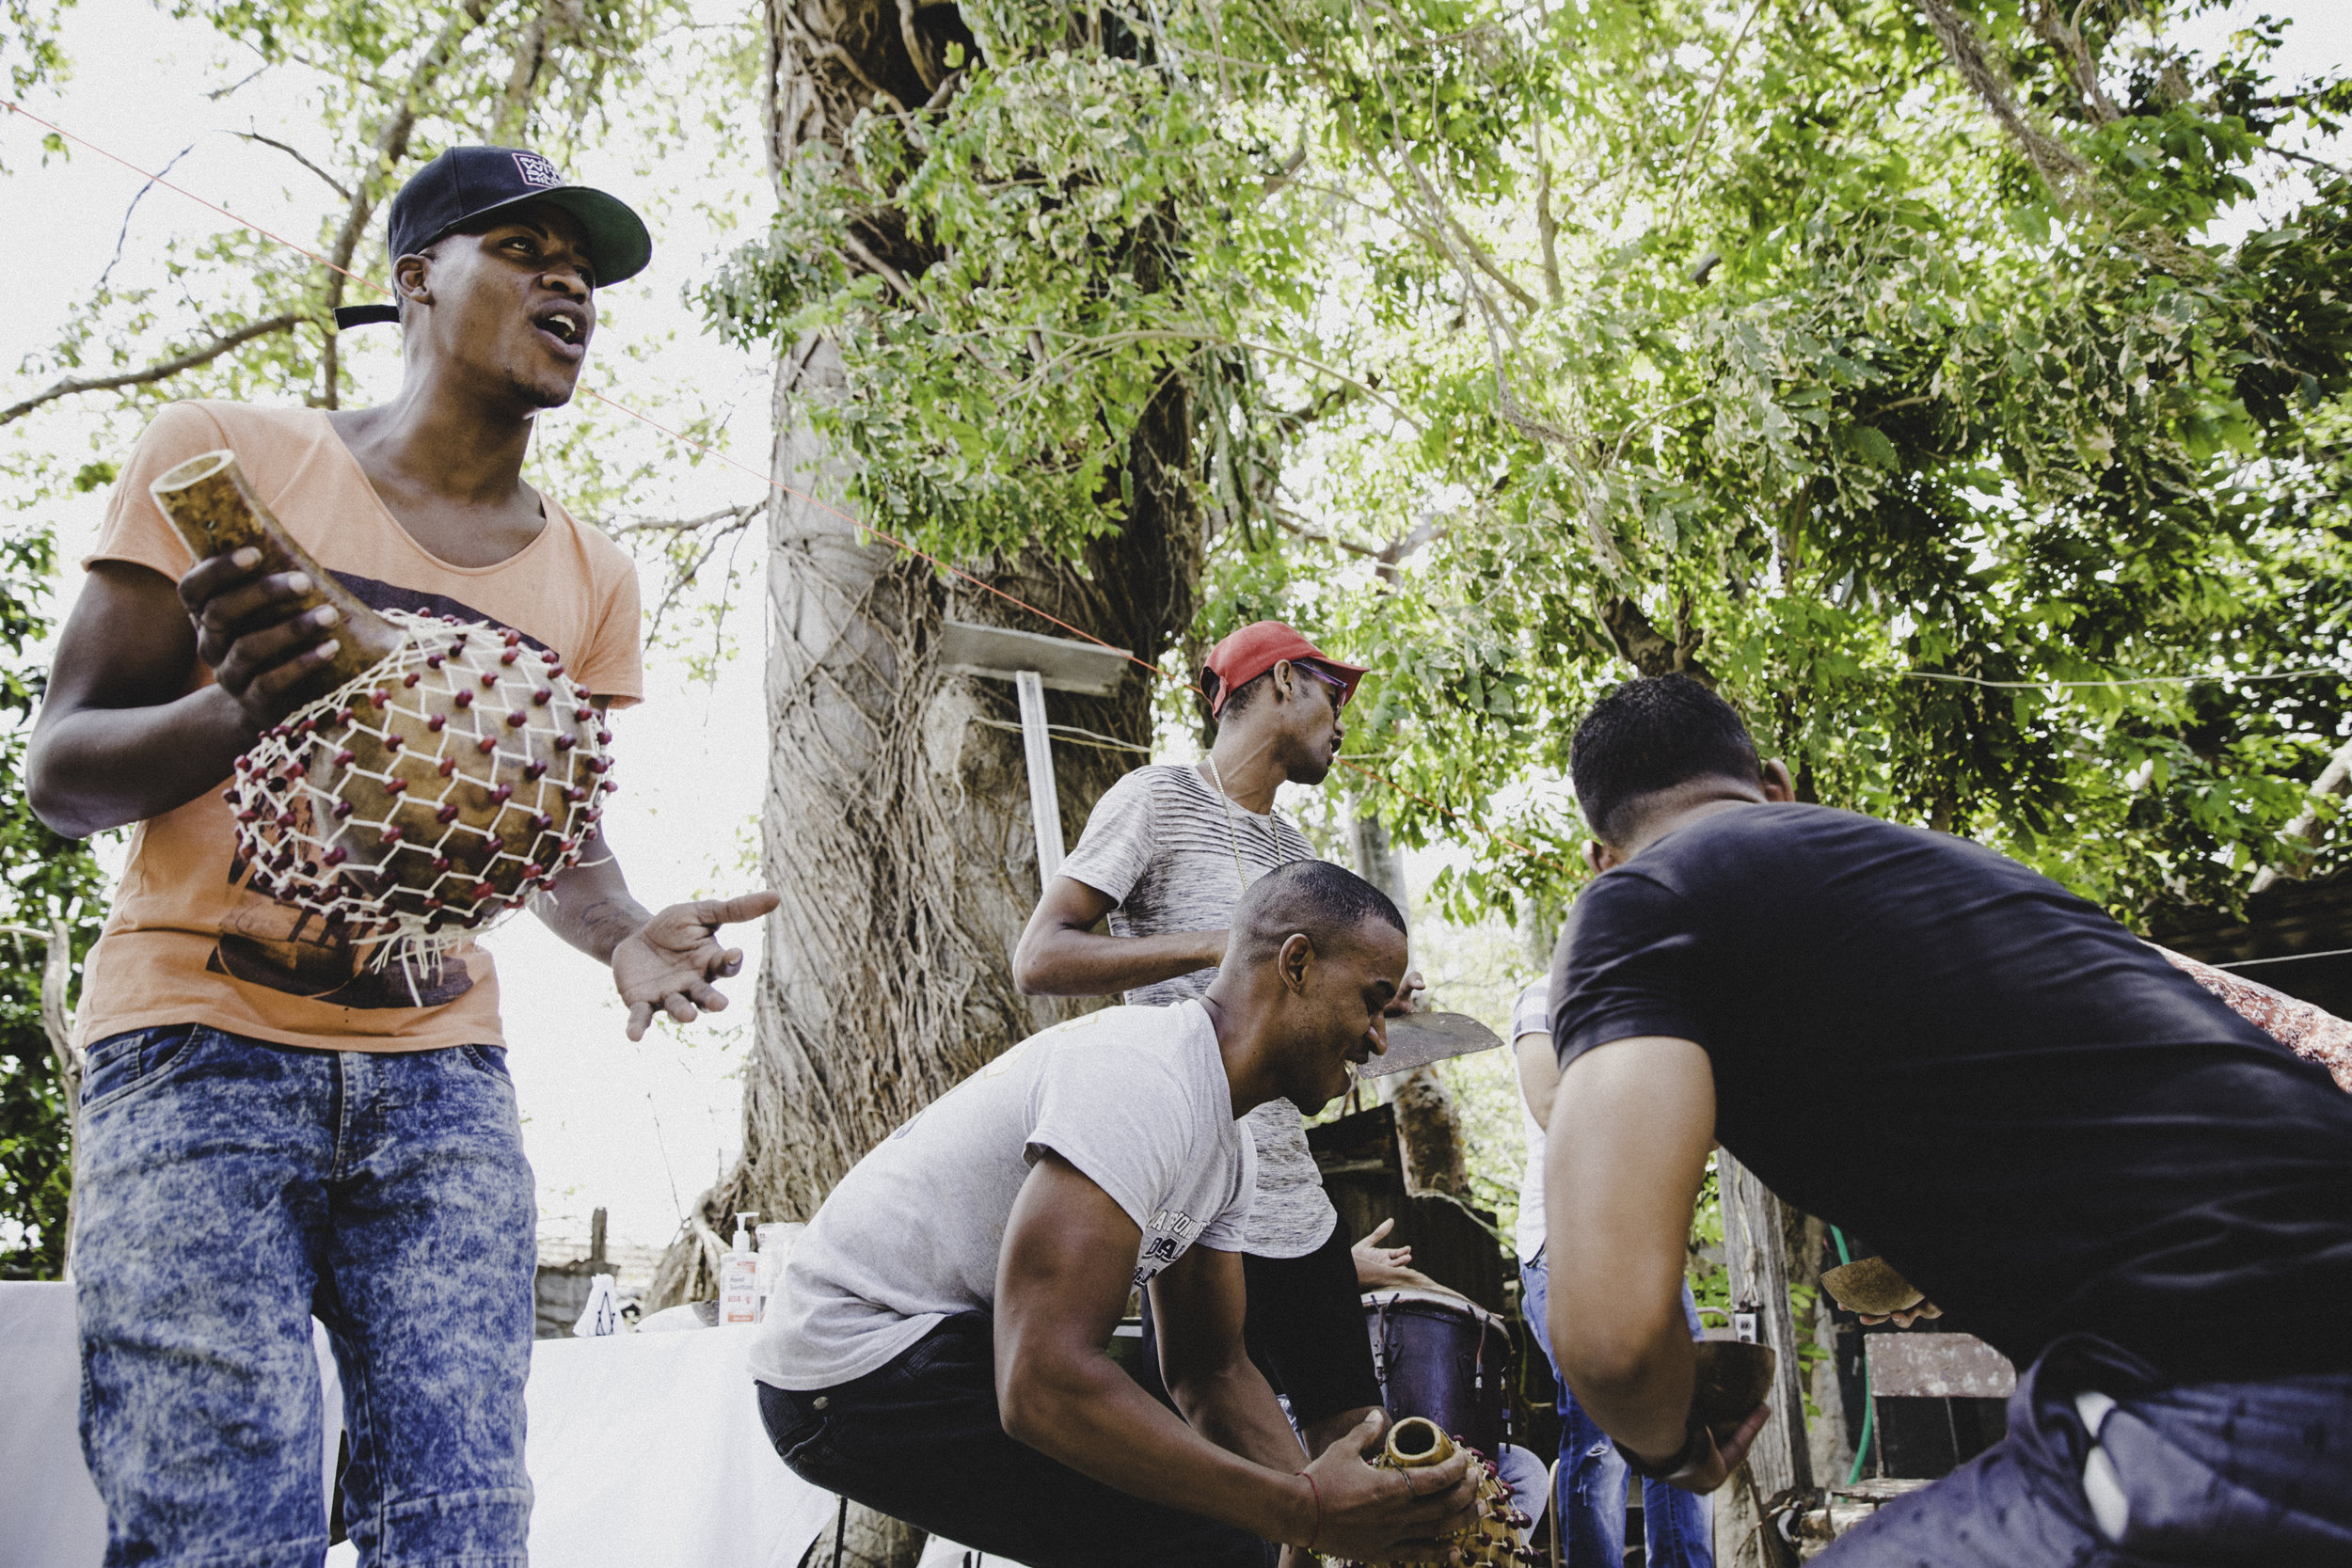 Young men playing spiritual AfroCuban music. Photo by Emory Hall for Comuna Travel.